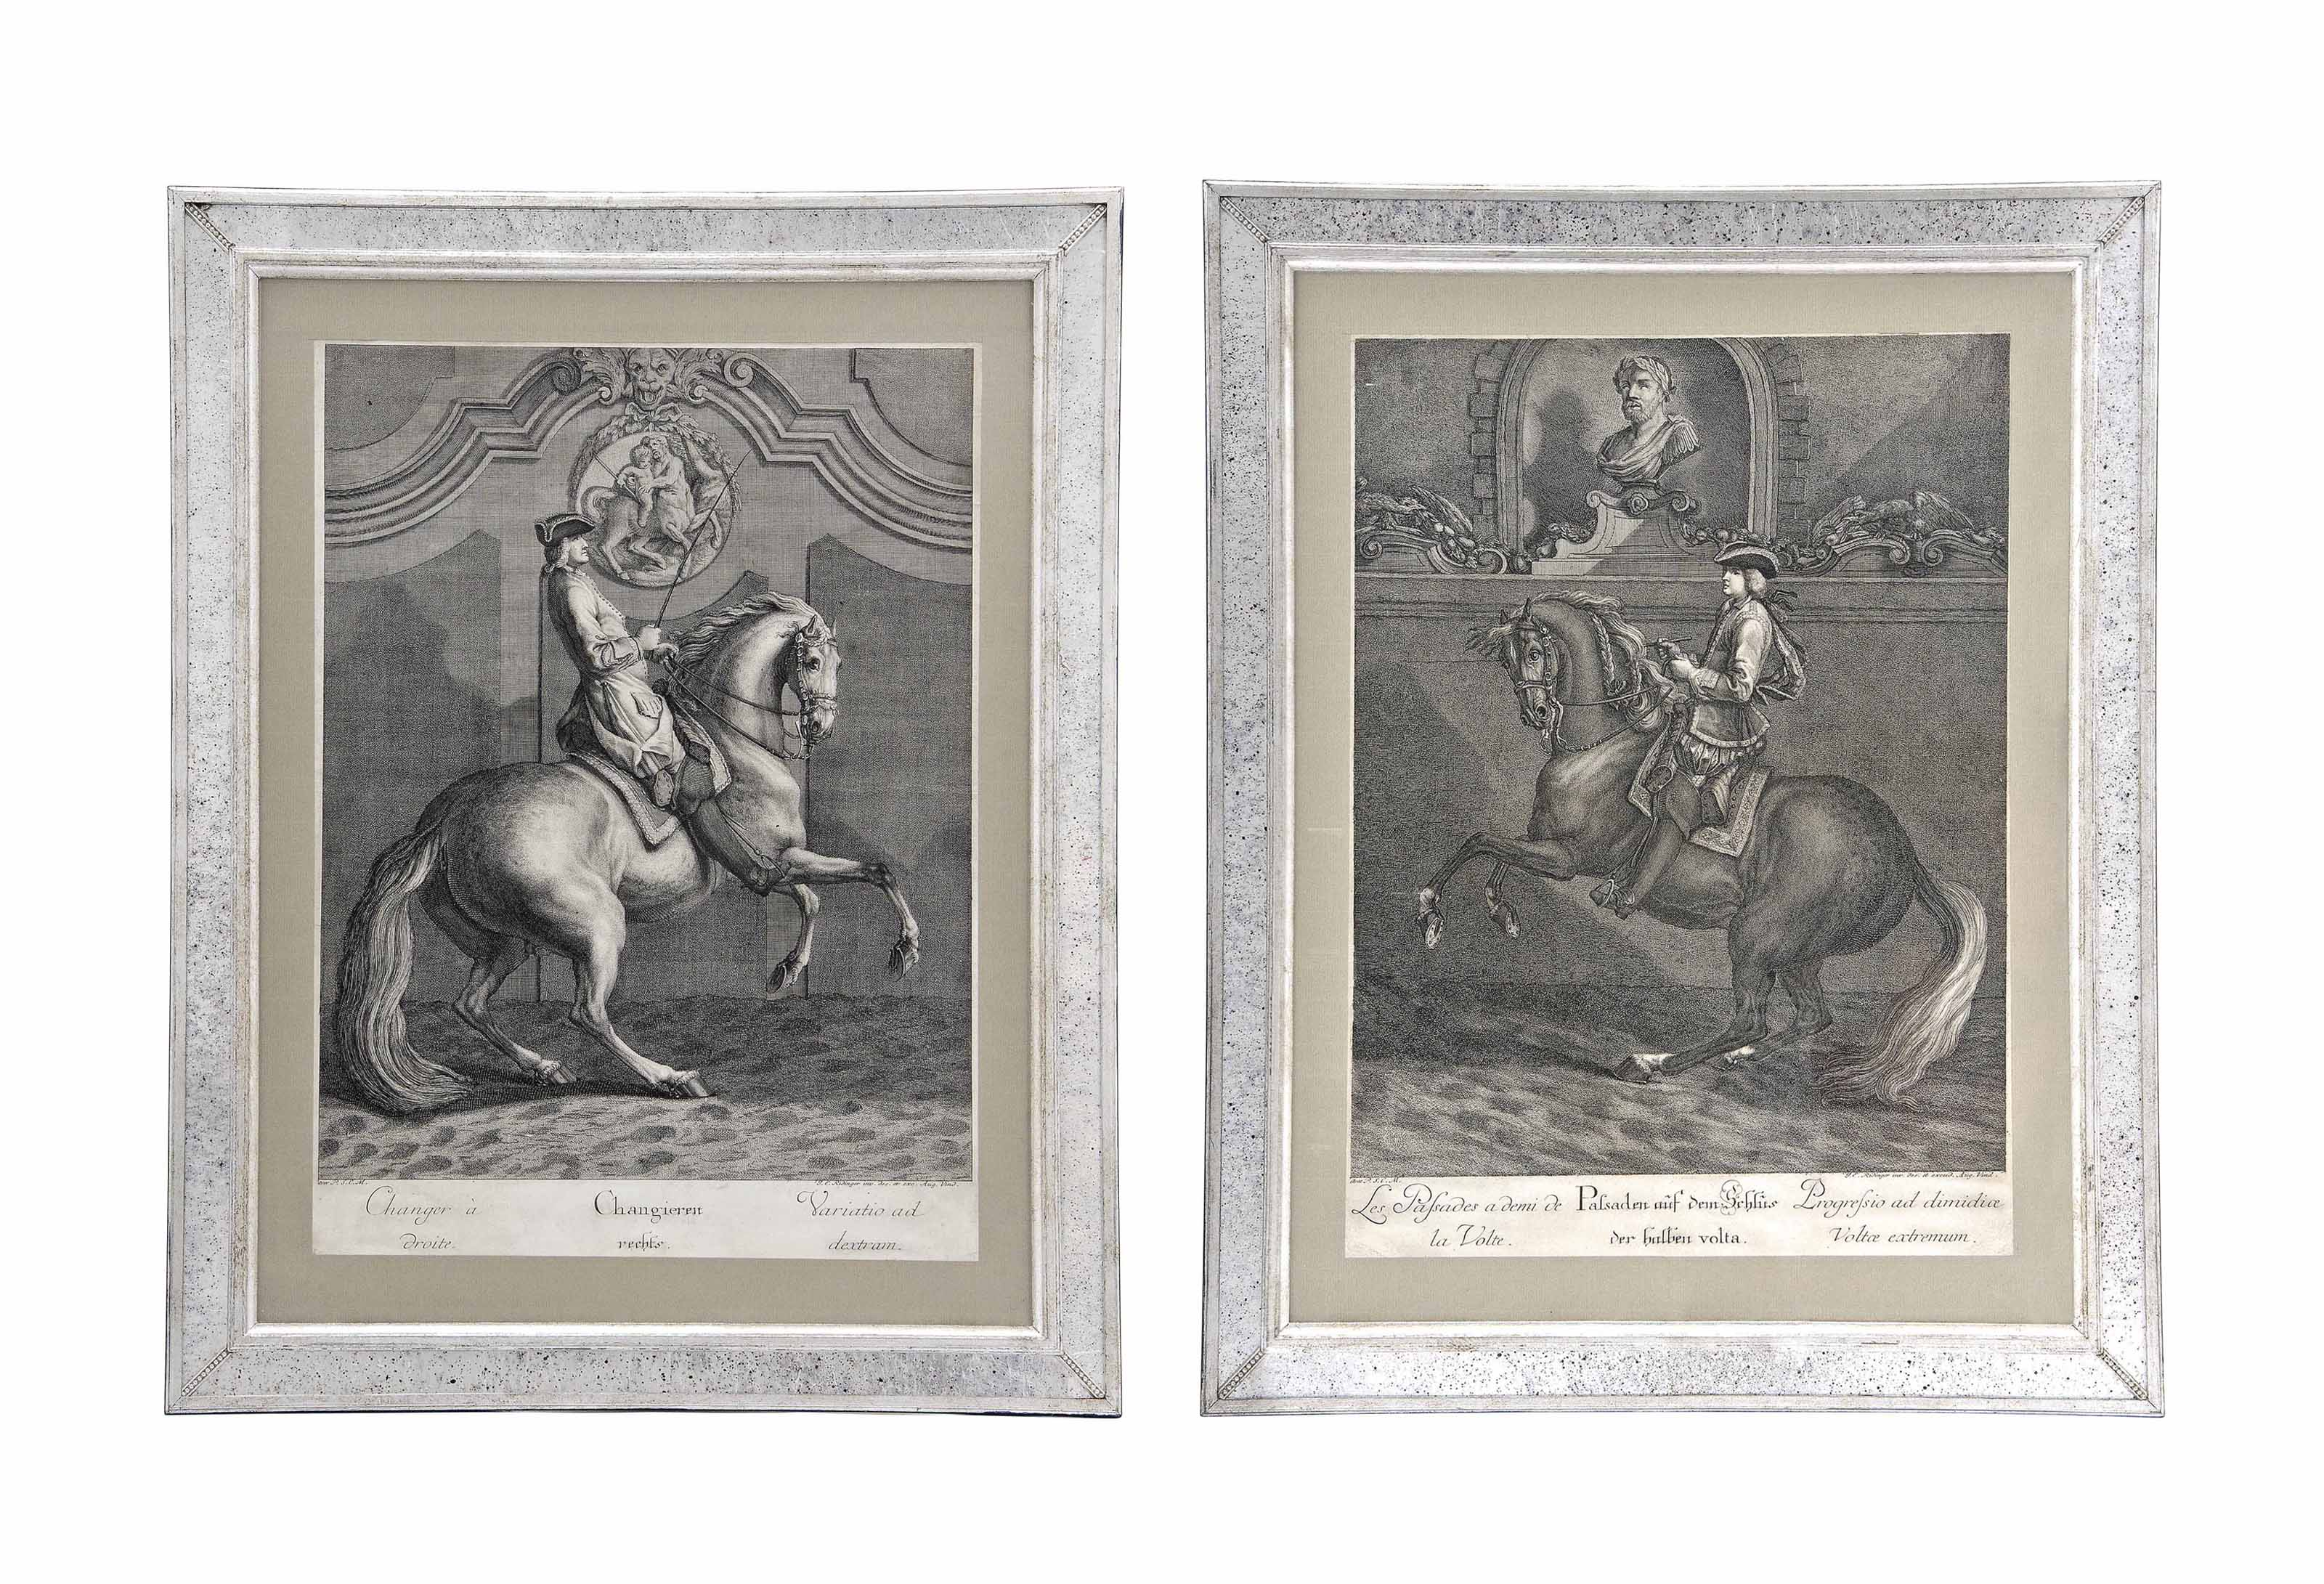 EIGHT ENGRAVINGS DEPICTING SCENES OF EQUESTRIAN DRESSAGE